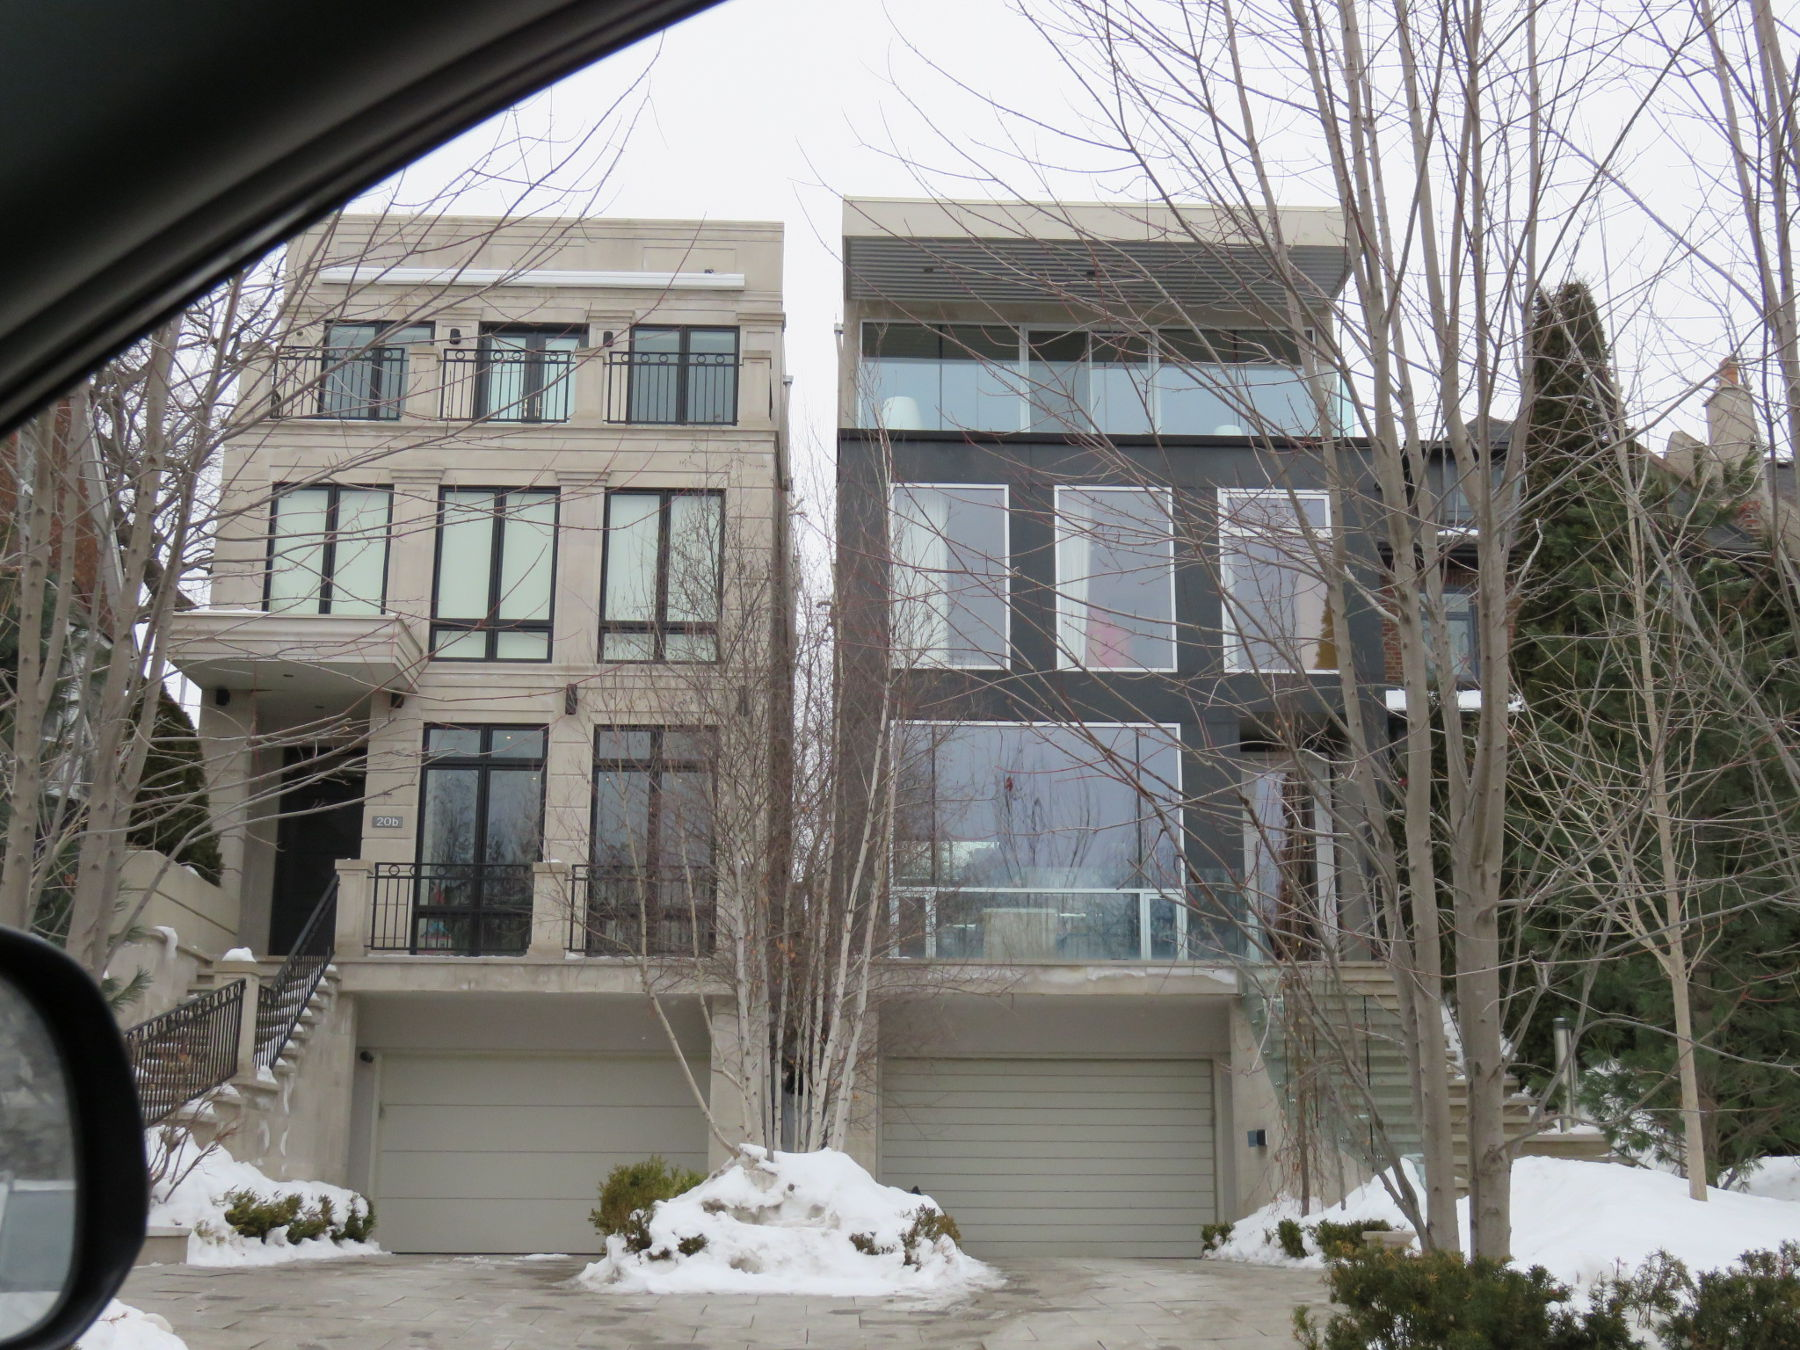 Contemporary Toronto Beautiful Modern Homes Around Town My 2 Cents On Design